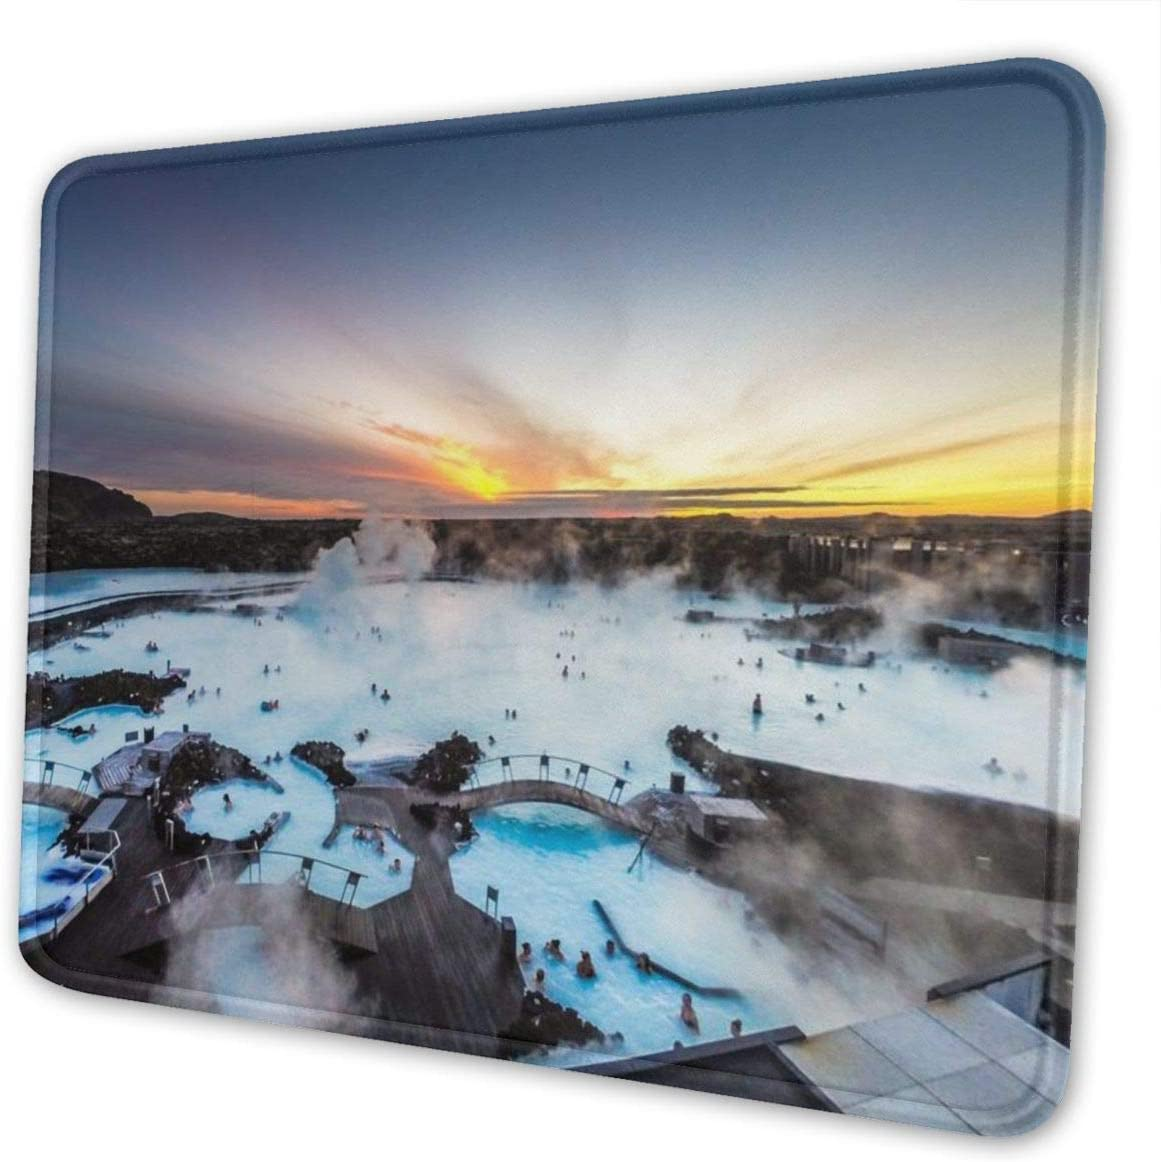 Iceland Blue Lagoon Mouse Pad Edge Stitched with Max 79% OFF Premium-Textur A surprise price is realized